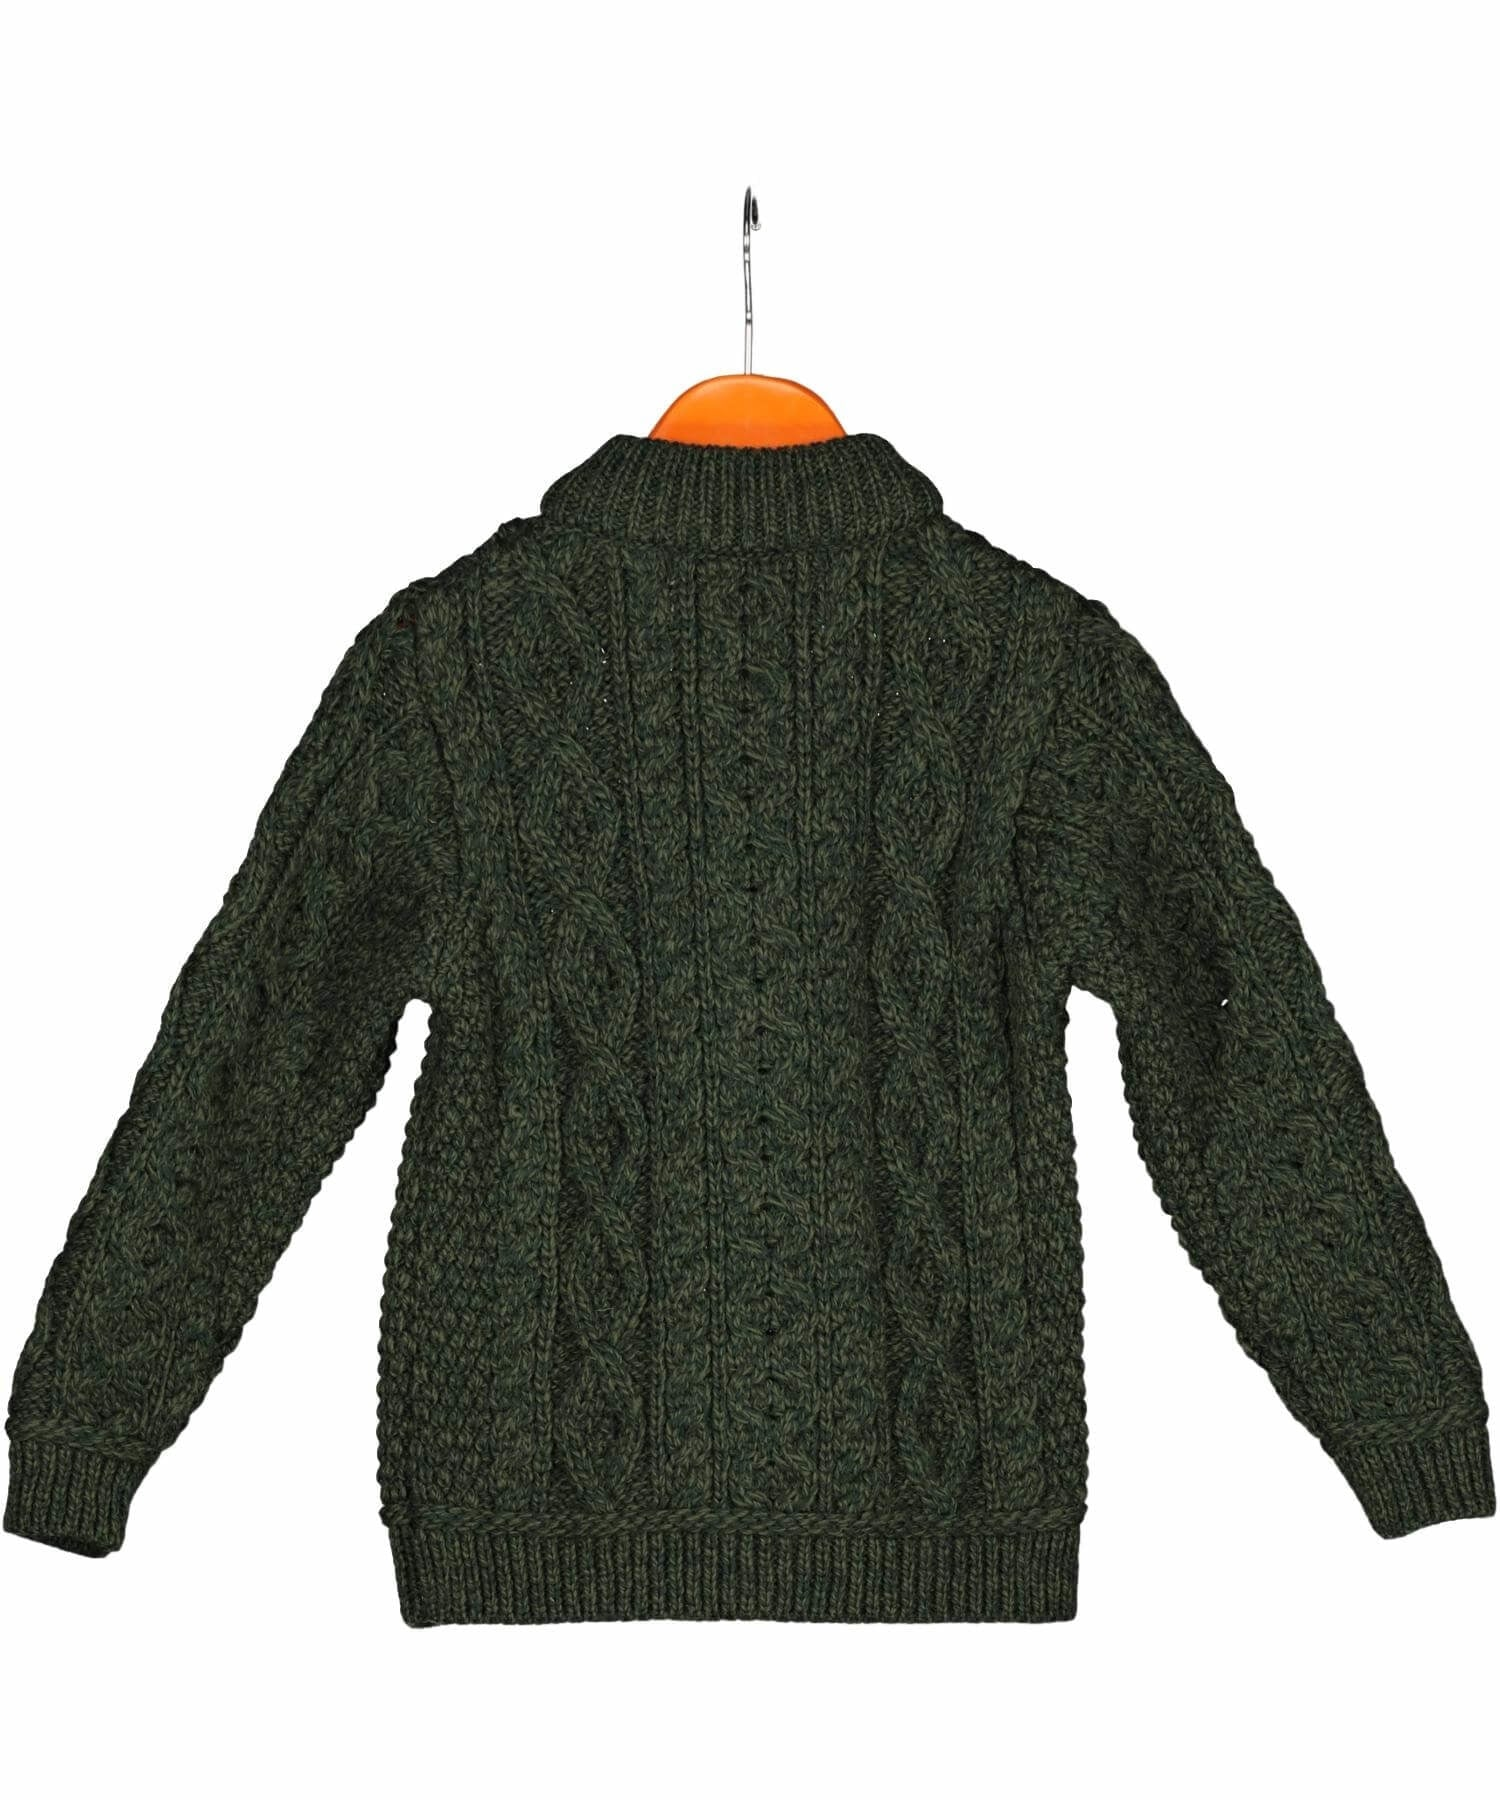 Kids Half Zip Sweater - Army Green - [Aran Crafts] - Childrens Sweaters & Cardigans - Irish Gifts